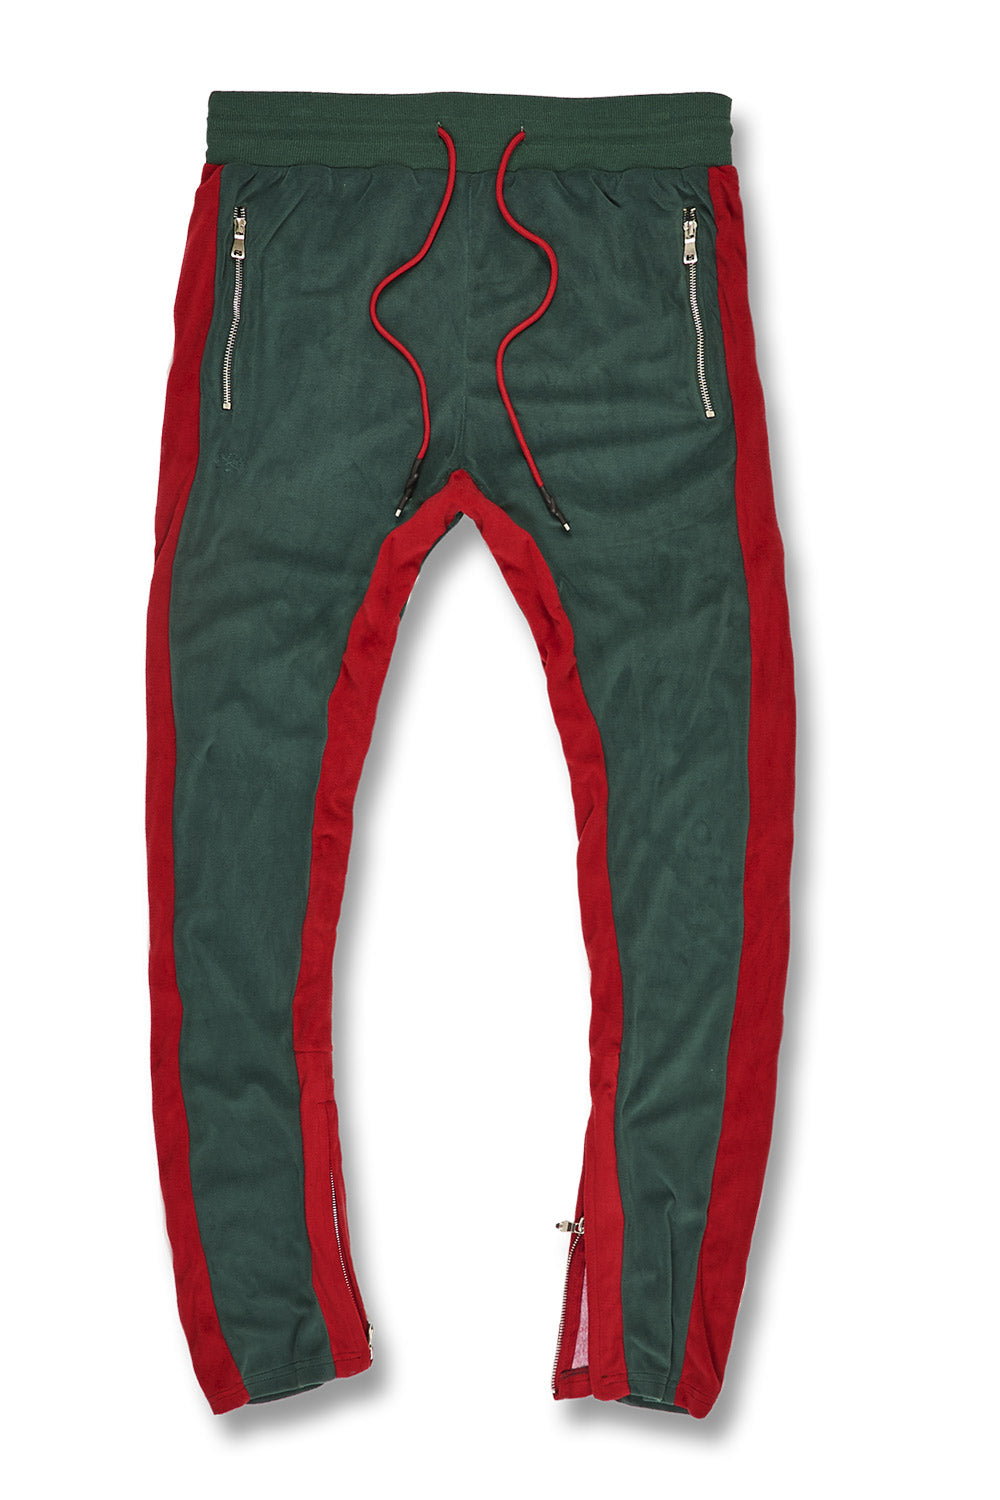 Jordan Craig - Big Men's Luciano Velour Pants (Green)